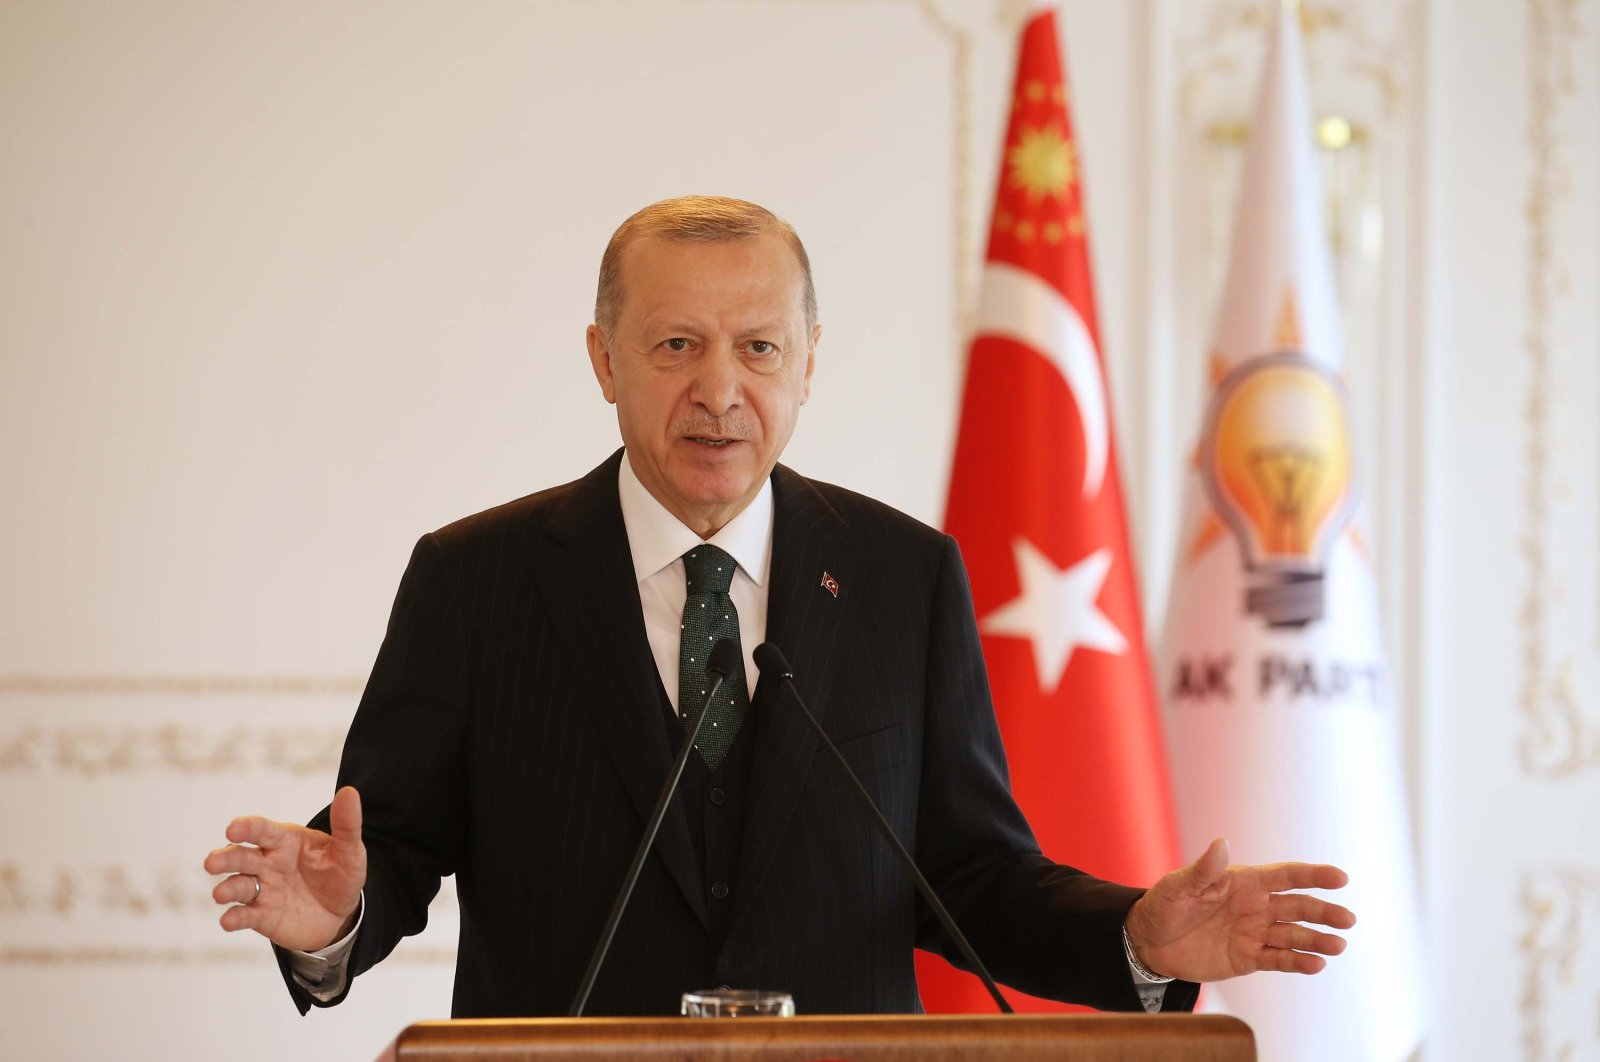 President Recep Tayyip Erdoğan attends a videoconference with Justice and Development Party (AK Party) provincial organizations, Istanbul, Nov. 22, 2020 (DHA Photo)